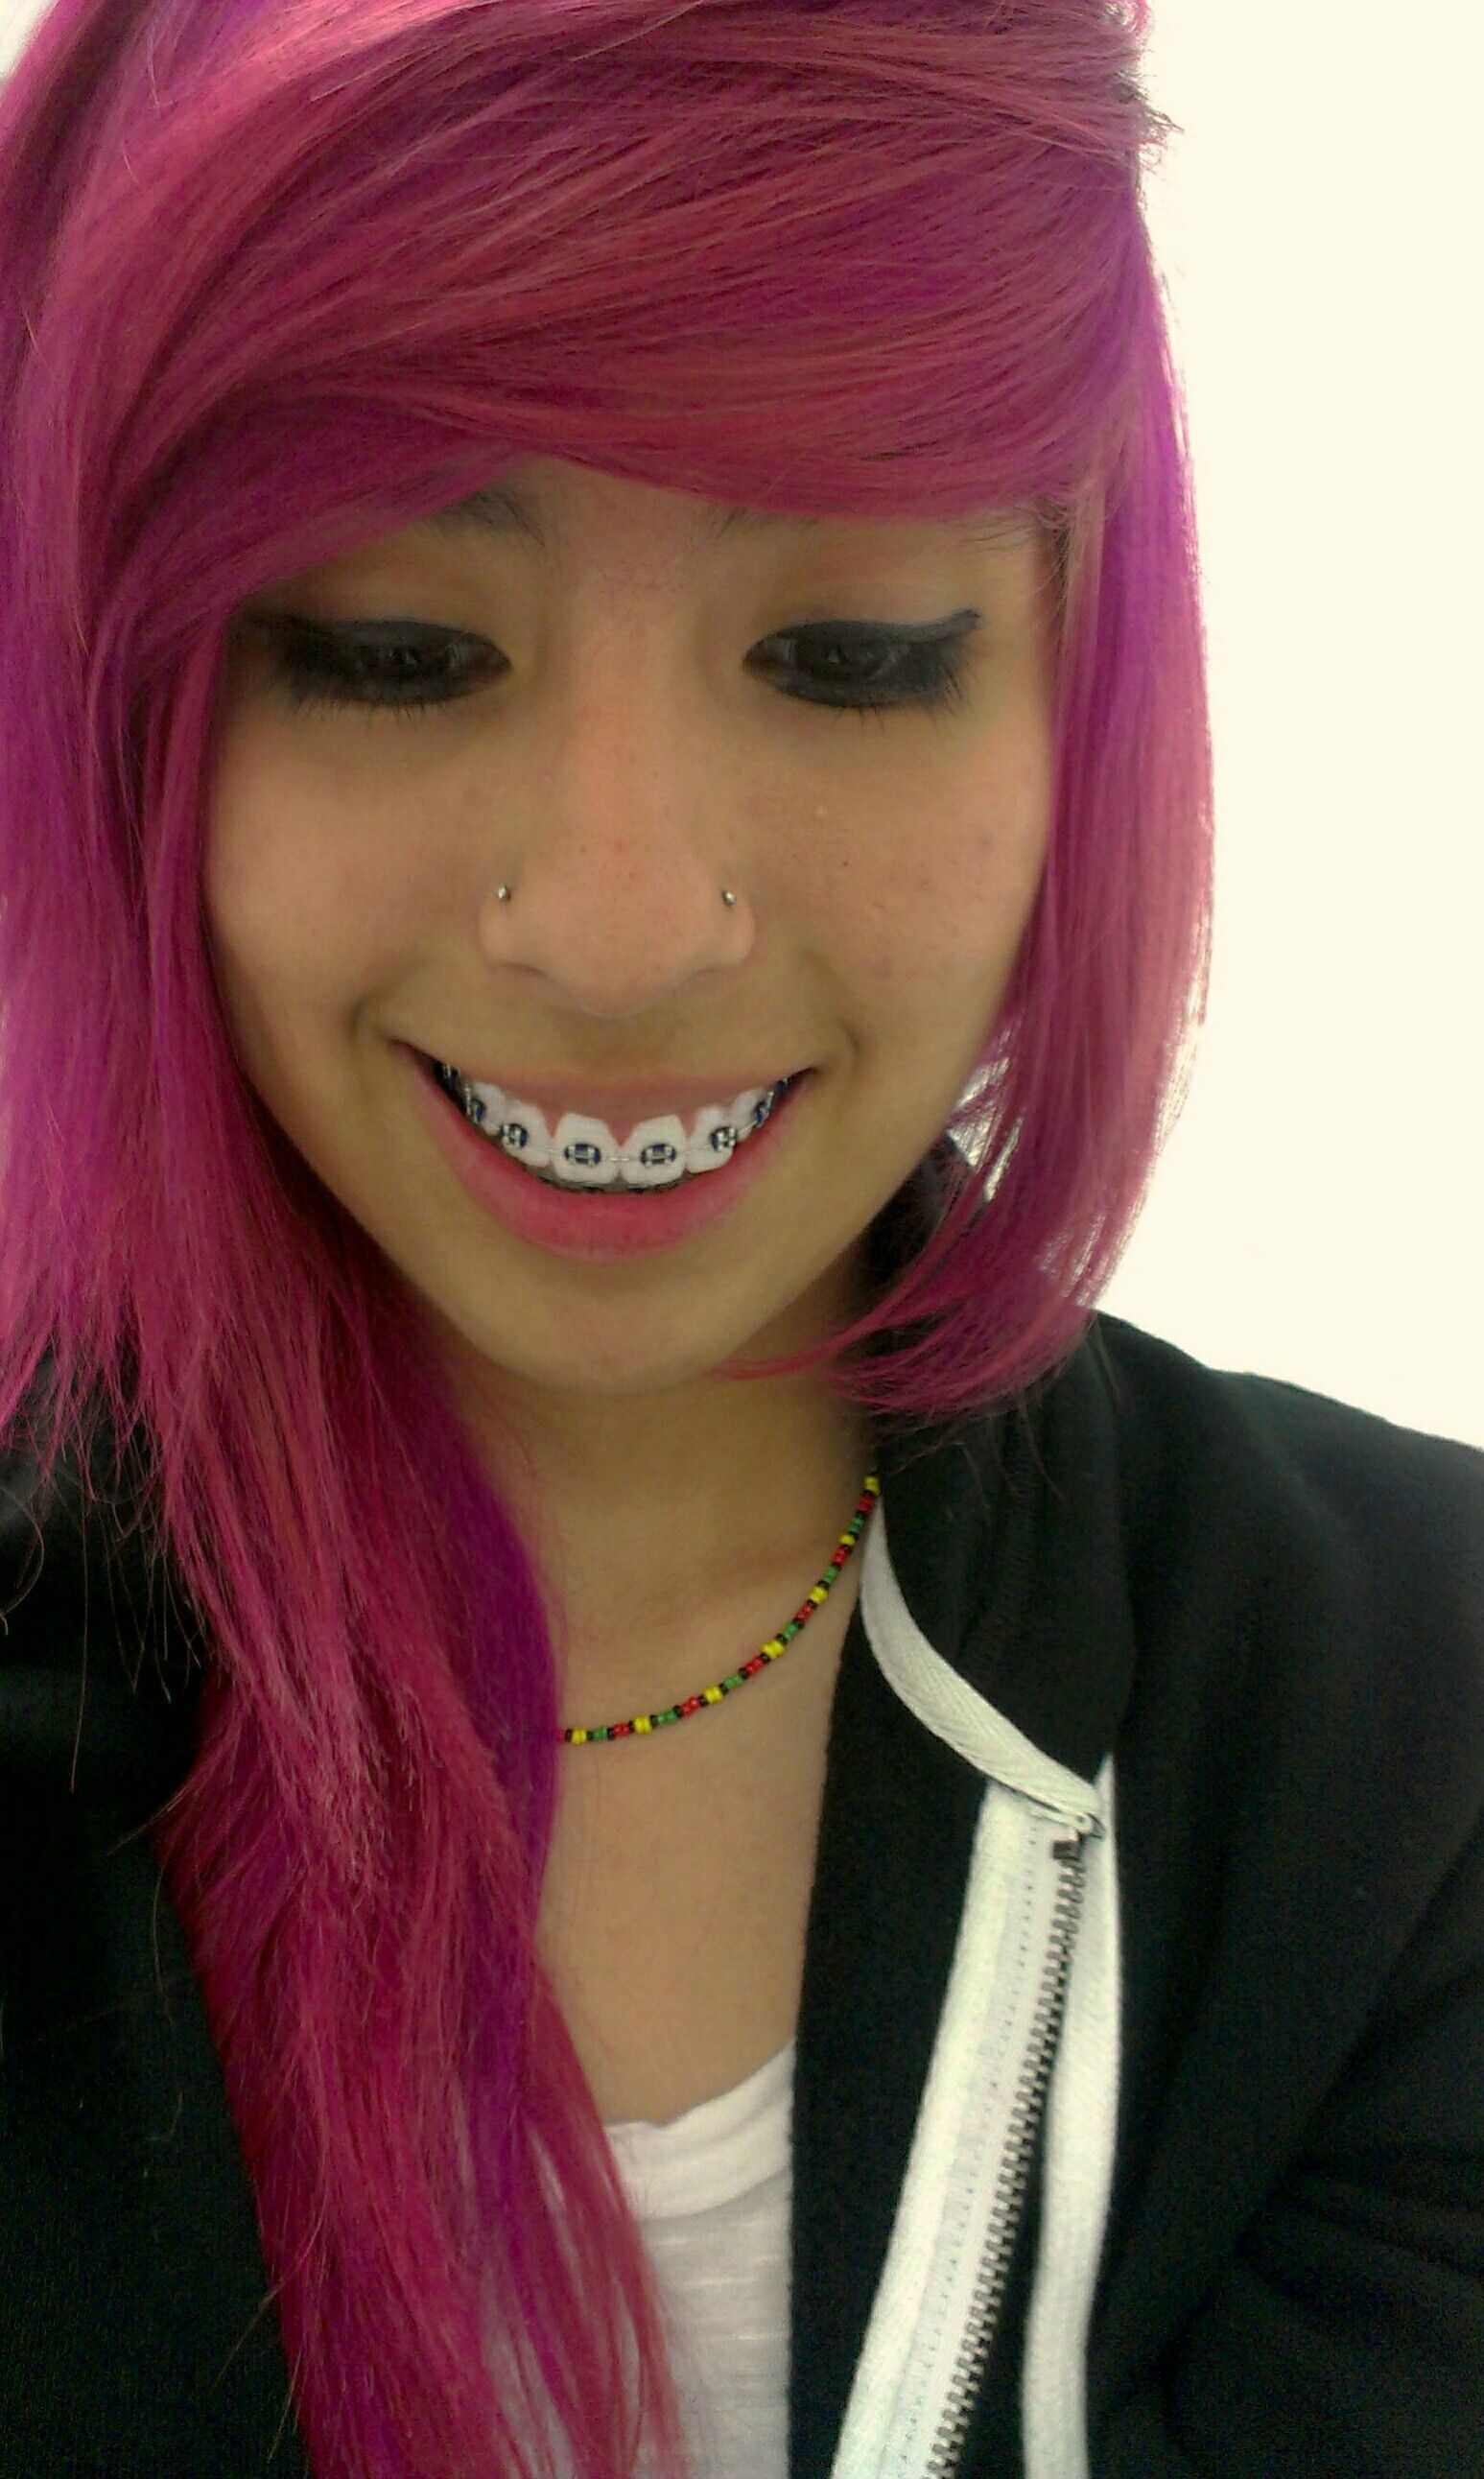 paired nostril piercing | Ink and Piercings | Pinterest ...